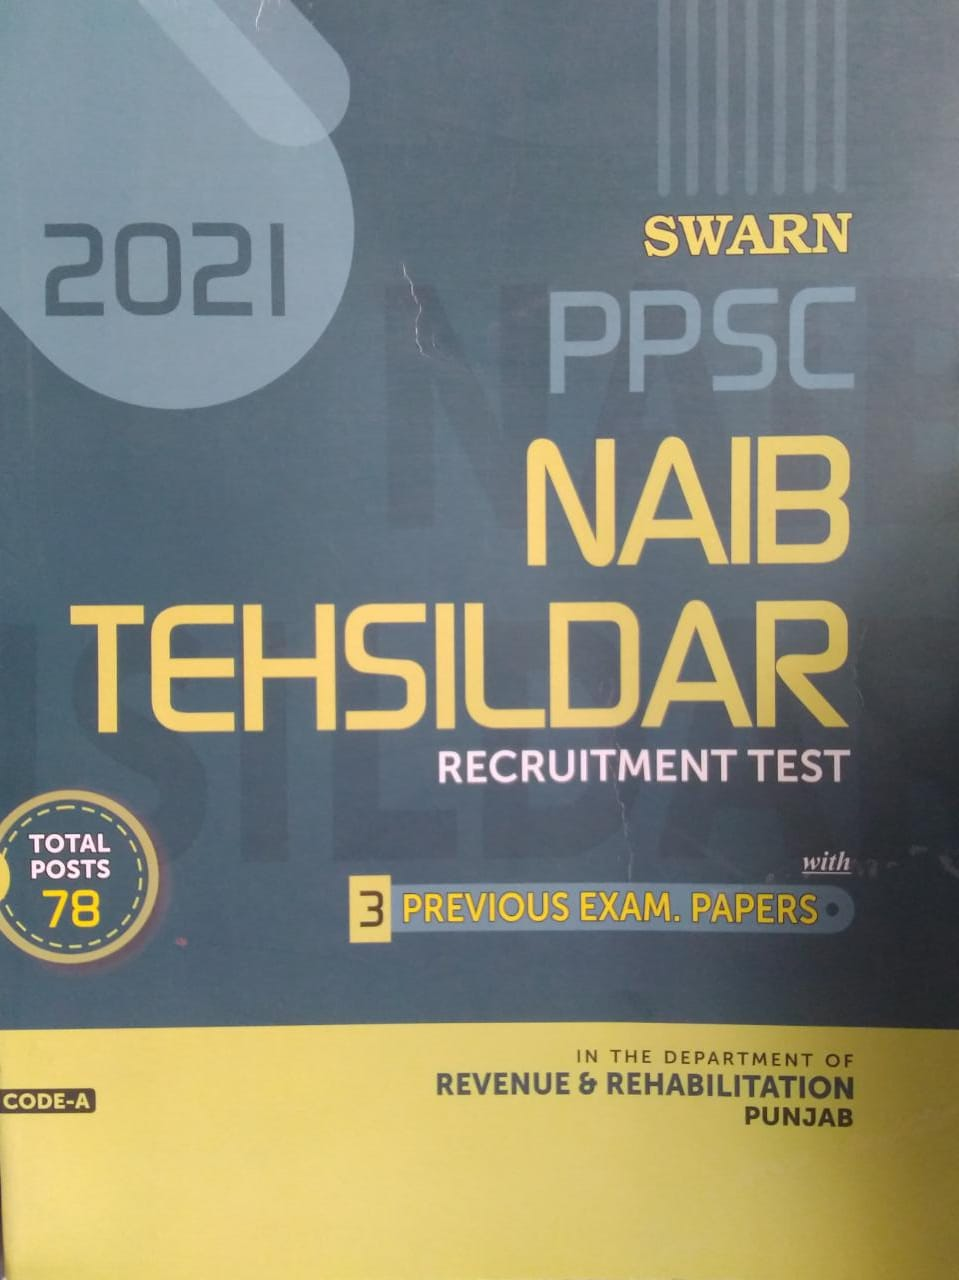 Swarn PPSC Naib Tehsildar Recruitment Test with 3 Previous Exam. Papers in the department of revenue & rehabilitation Punjab Code-A